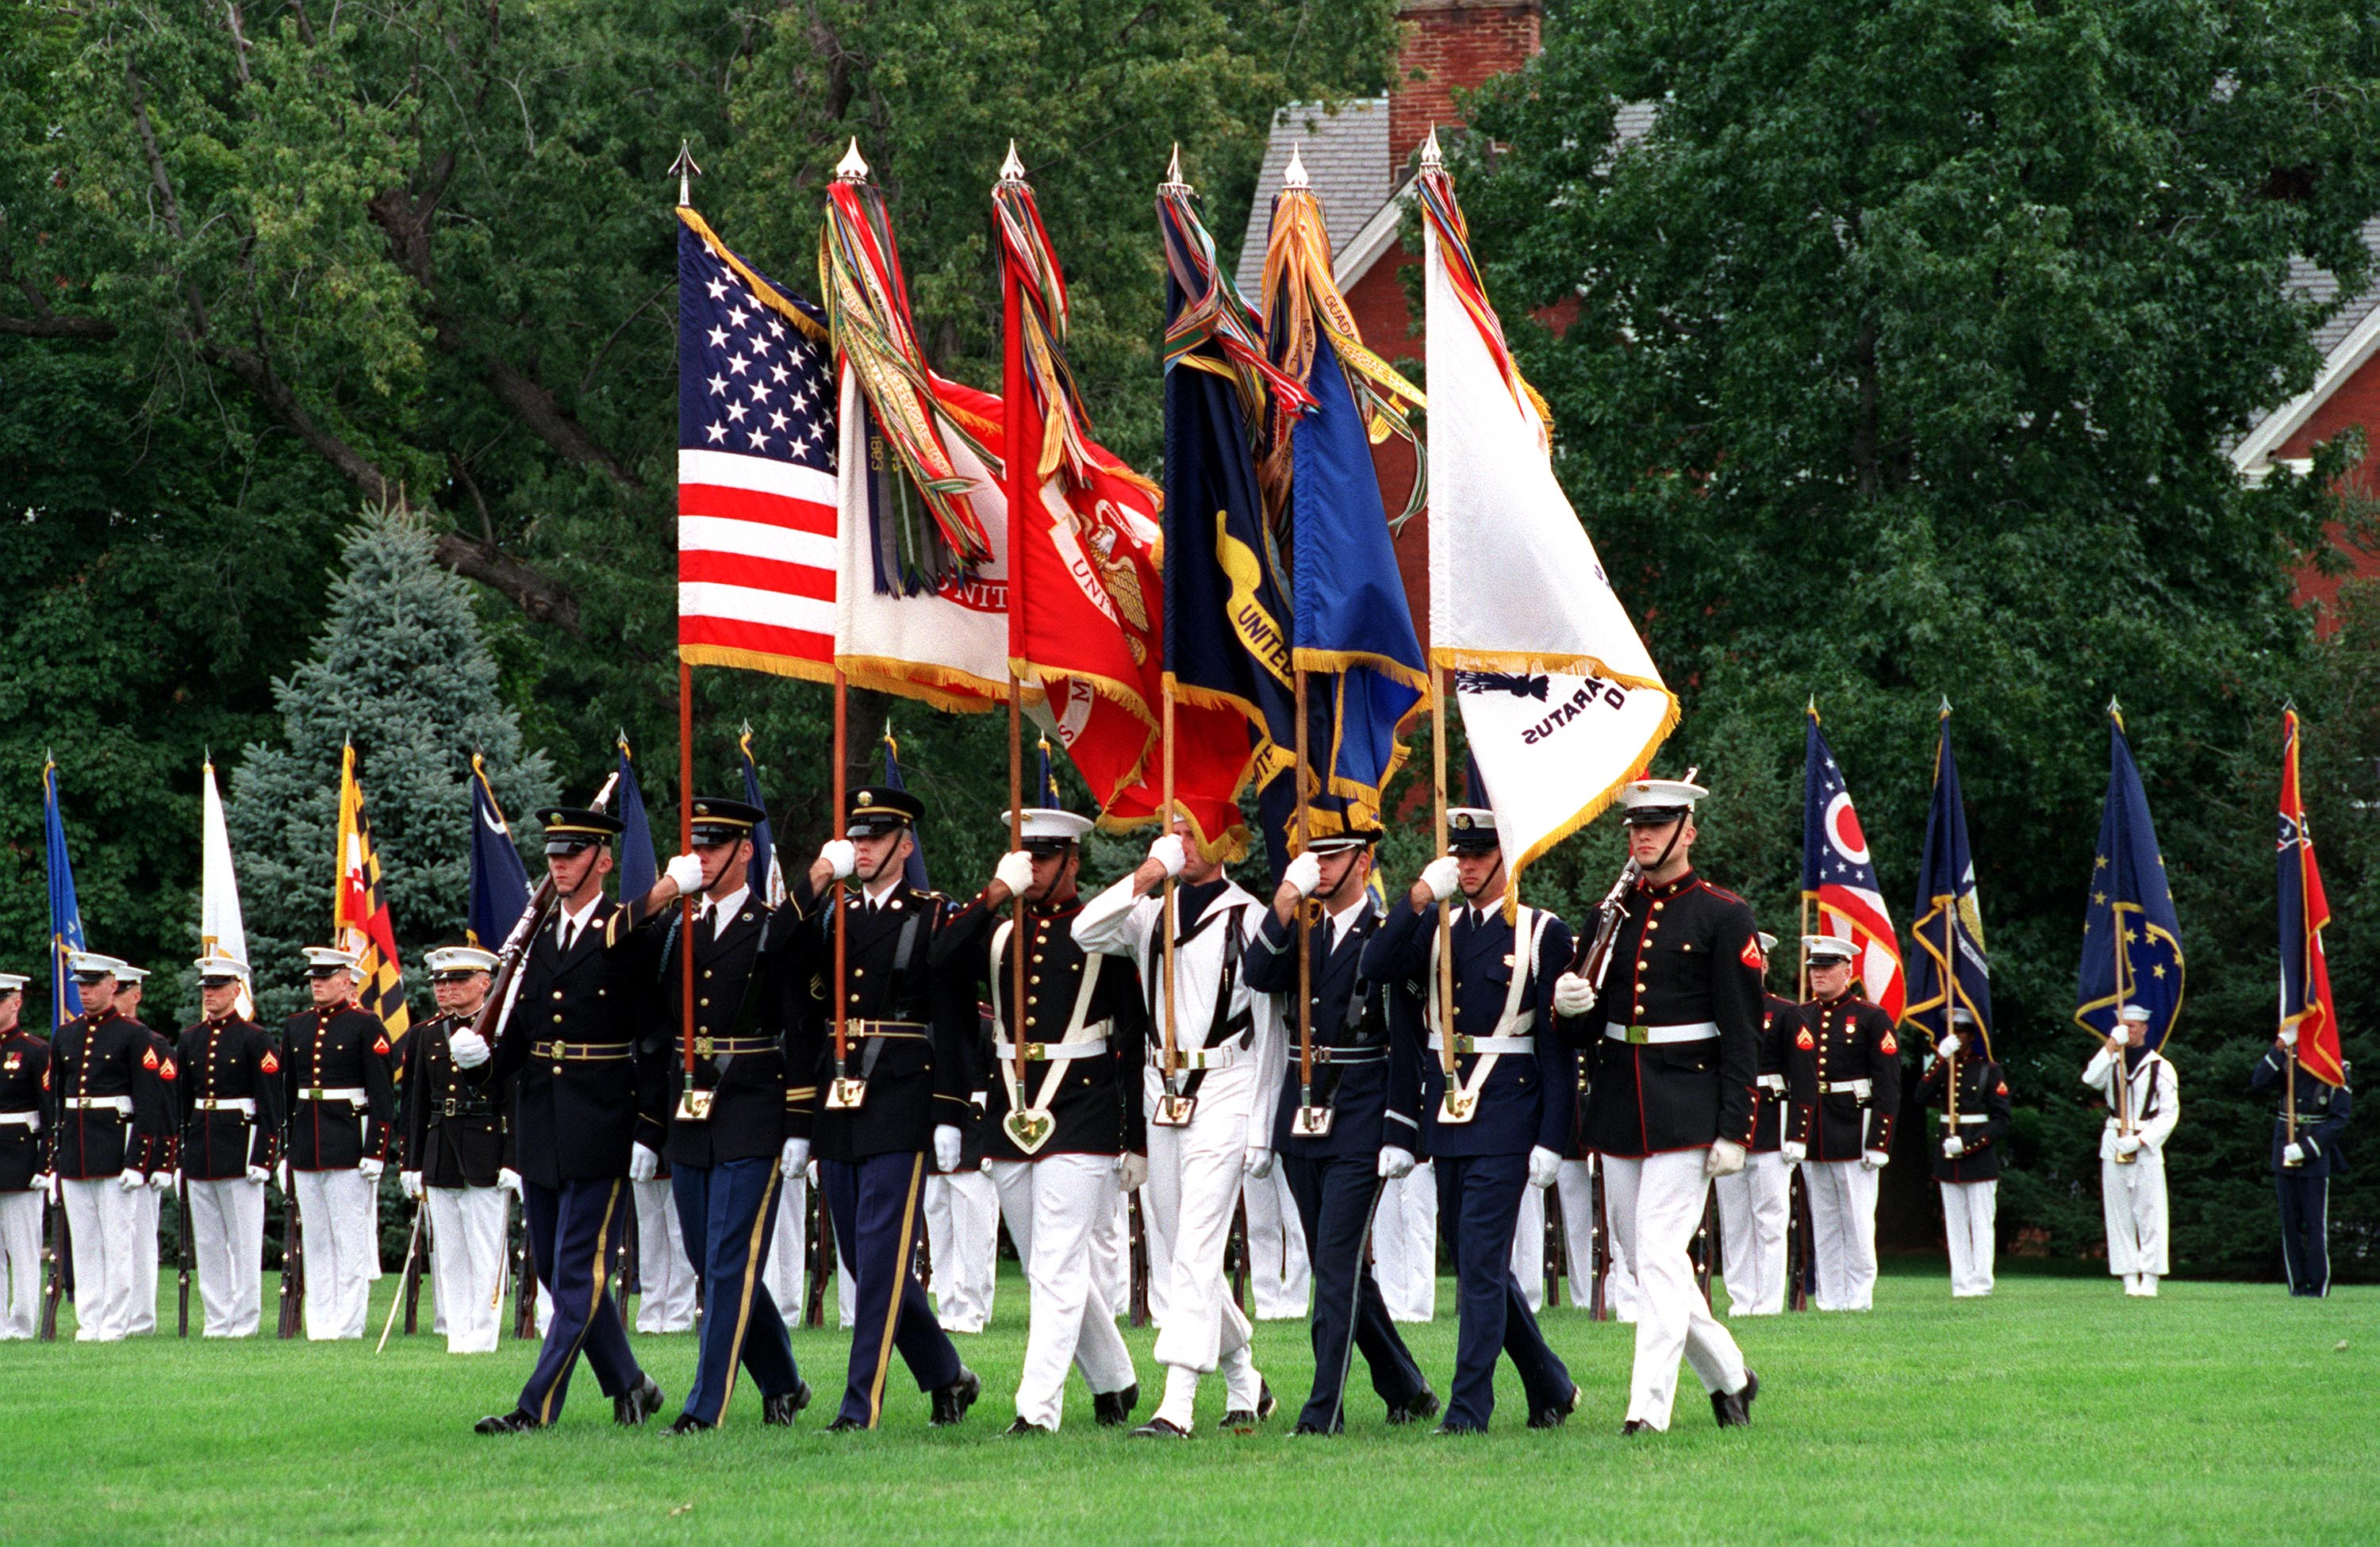 United State Military Jointcolors :: Veterans' Day :: AnExtraordinaryDay.net